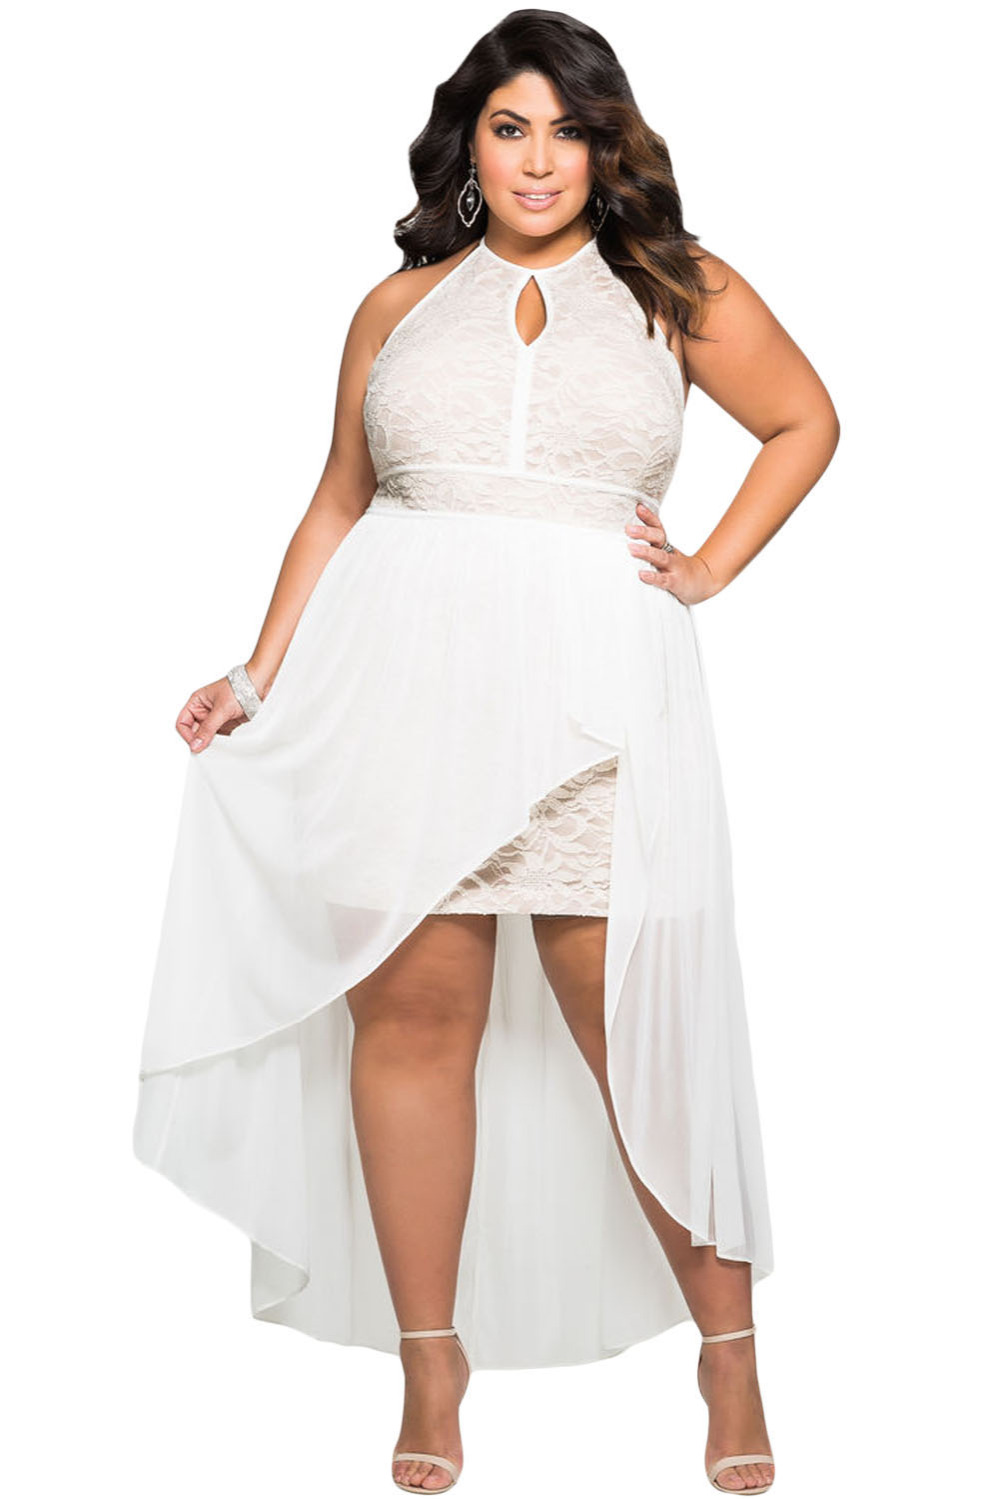 Women's Plus Size Special Occasion Dresses Promotion-Shop for ...